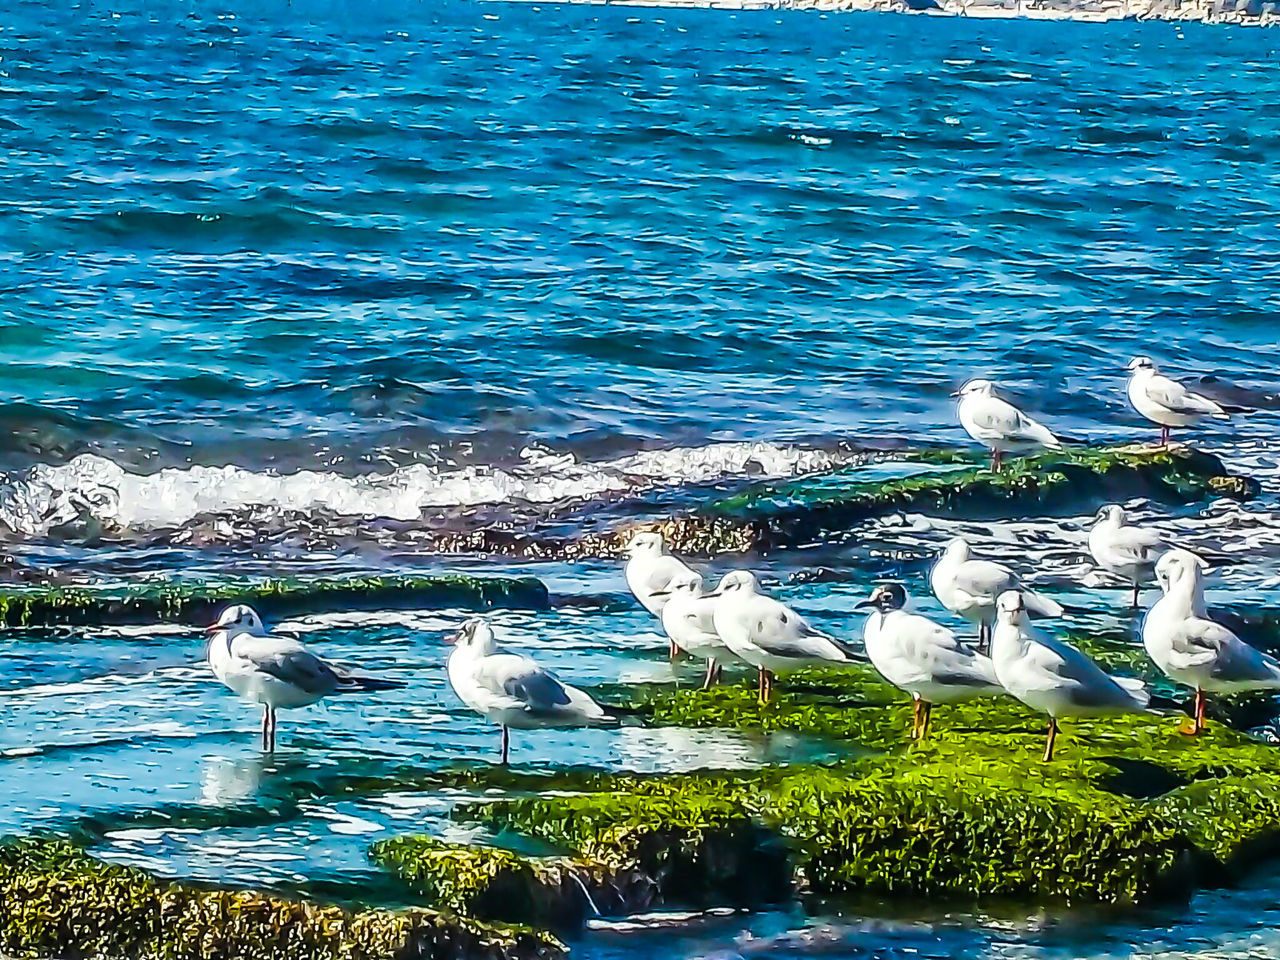 Seagull on mediteranean sea by elvio Beauty In Nature EyeEm Diversity Art Is Everywhere Artphotography Yogainspiration Eye Em Nature Lover EyeEmNewHere National Geographic EyeEmBestPics Fine Arts Photography EyeEm Best Edits Eyem Best Shots Nature_collection Birds Of EyeEm  Springtime Magazine Cover Design Vintage Style EyeEmNewHere Break The Mold The Great Outdoors - 2017 EyeEm Awards